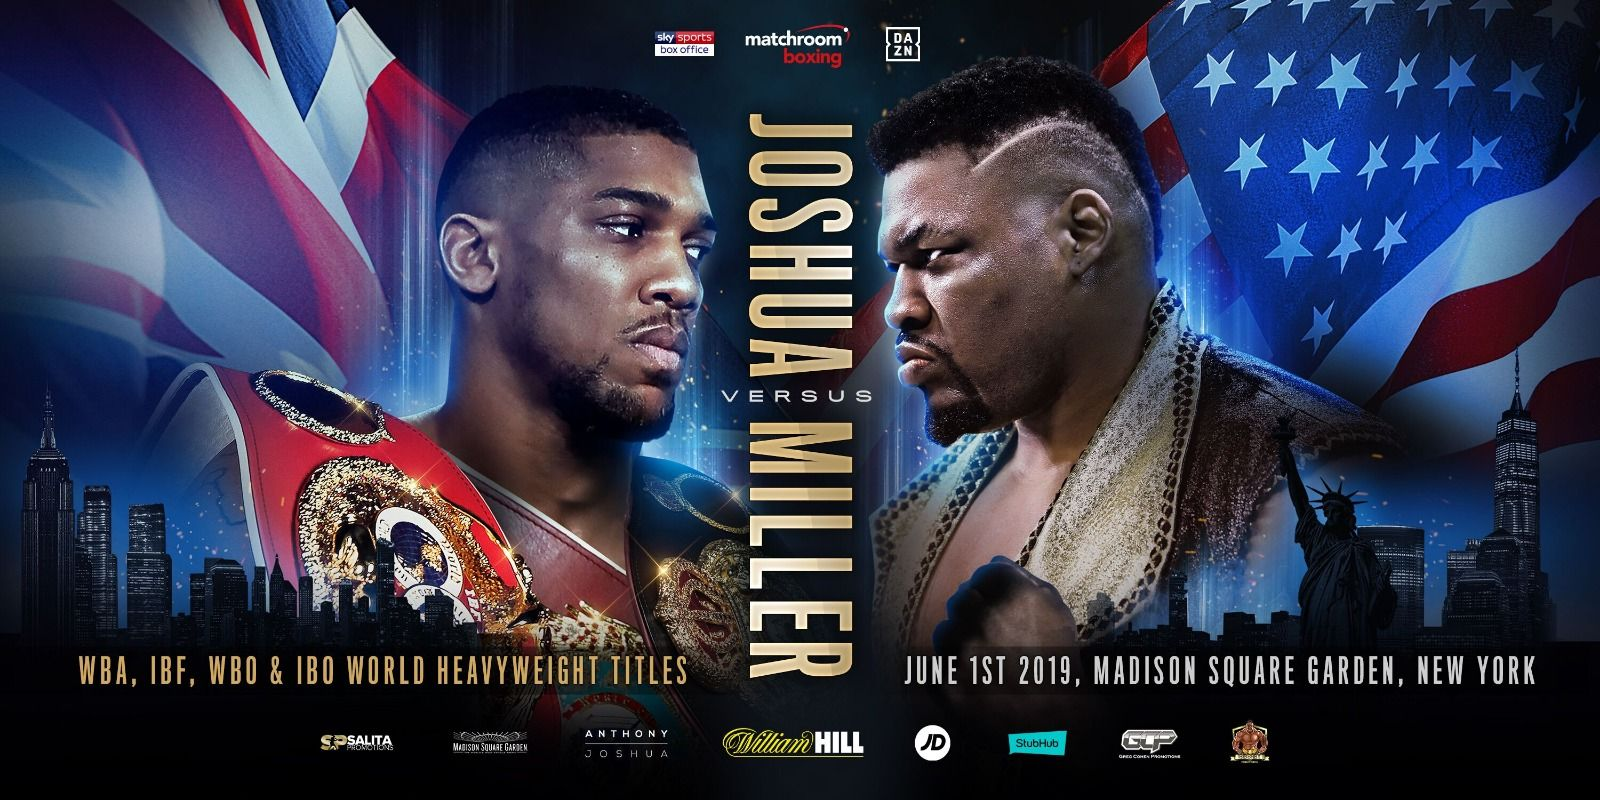 ANTHONY JOSHUA TO FACE JARRELL MILLER IN U.S. DEBUT AT MSG